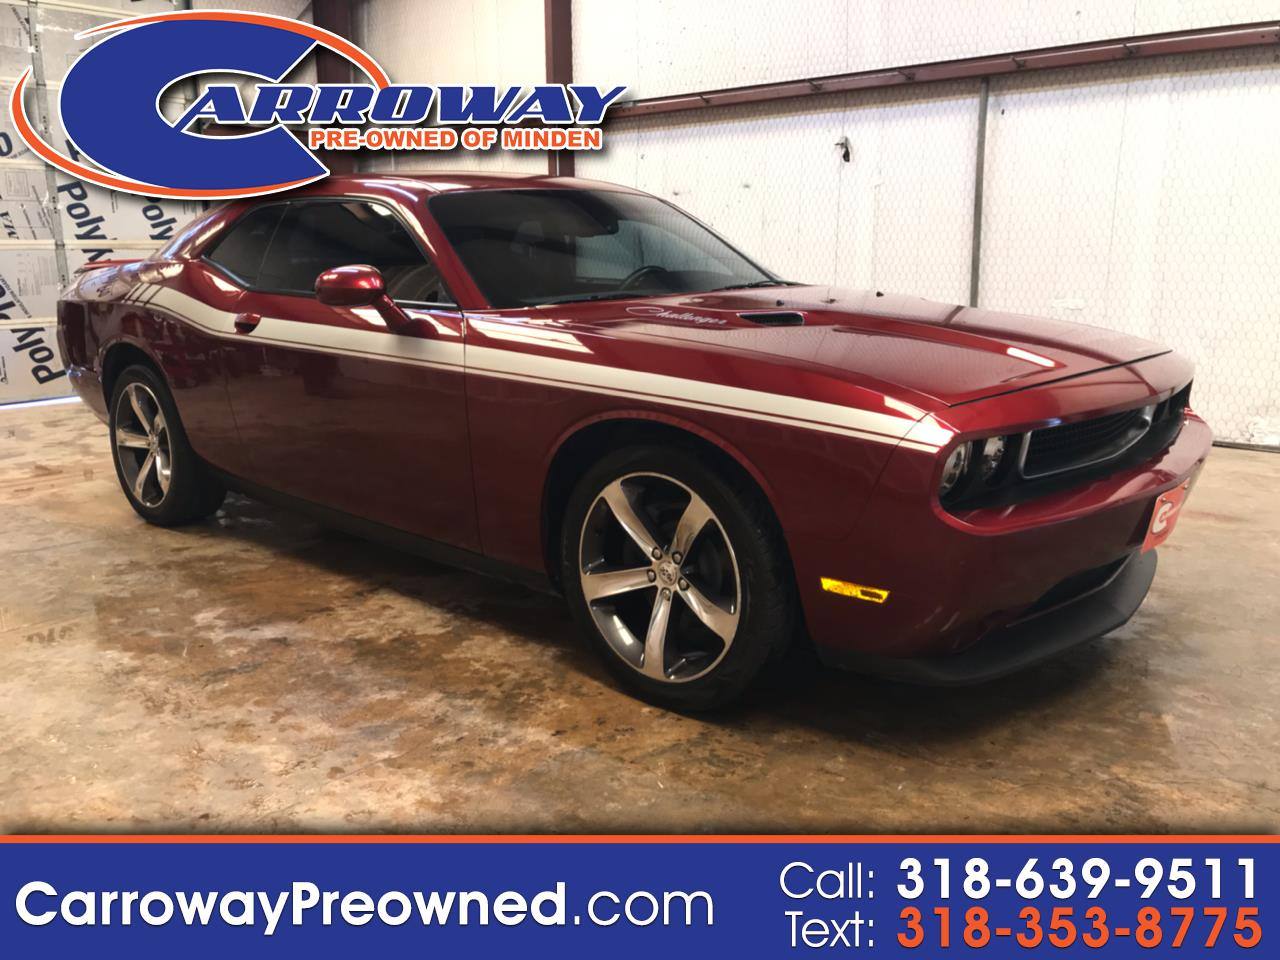 2014 Dodge Challenger 2dr Cpe R/T 100th Anniversary Appearance Group